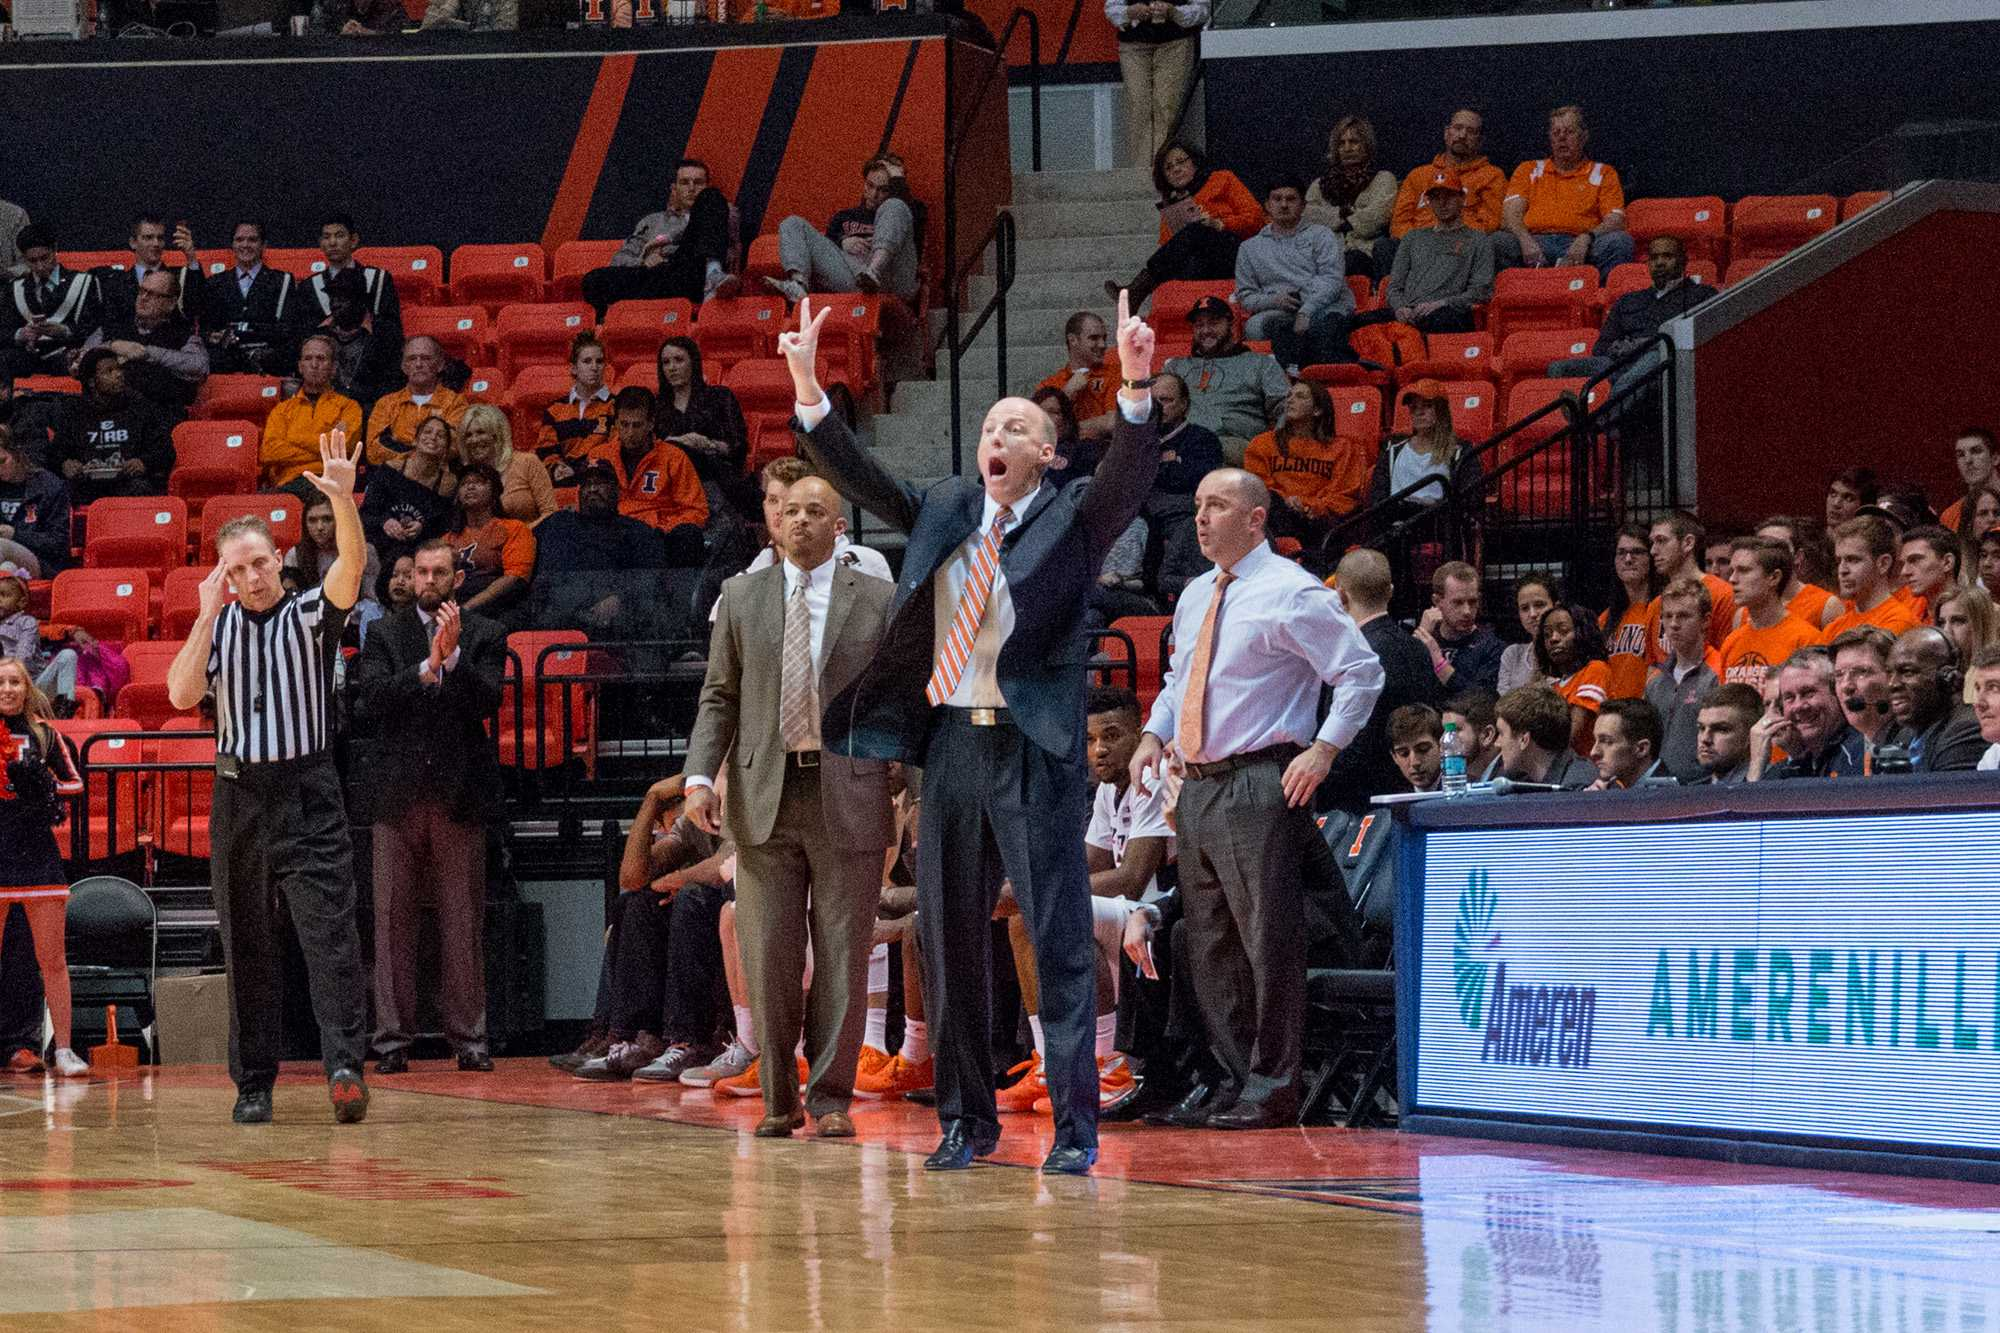 Illinois head coach John Groce calls out a play during the game against Rutgers at the State Farm Center on February 17. The Illini won 82-66.